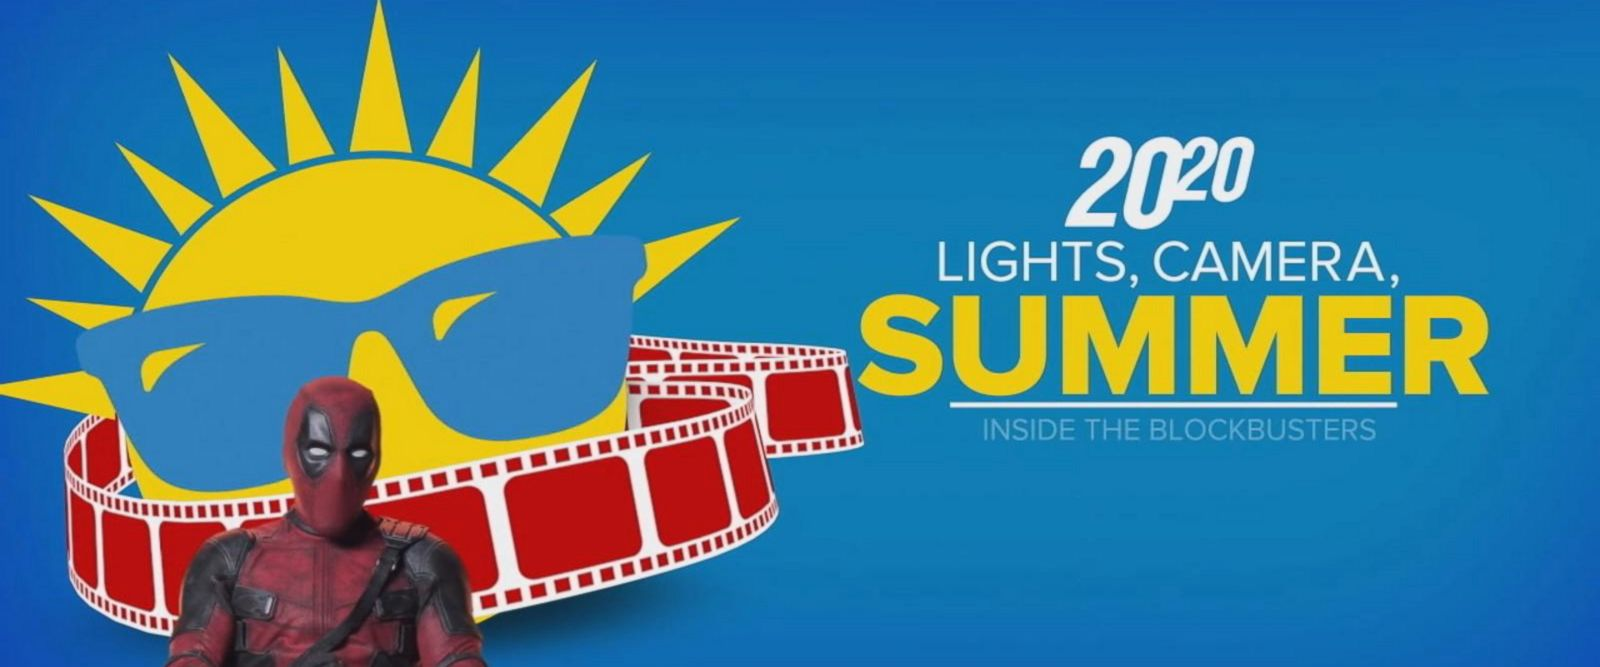 VIDEO: 'Lights, Camera, Summer: Inside the Blockbusters' Airs Wednesday at 10/9c on ABC